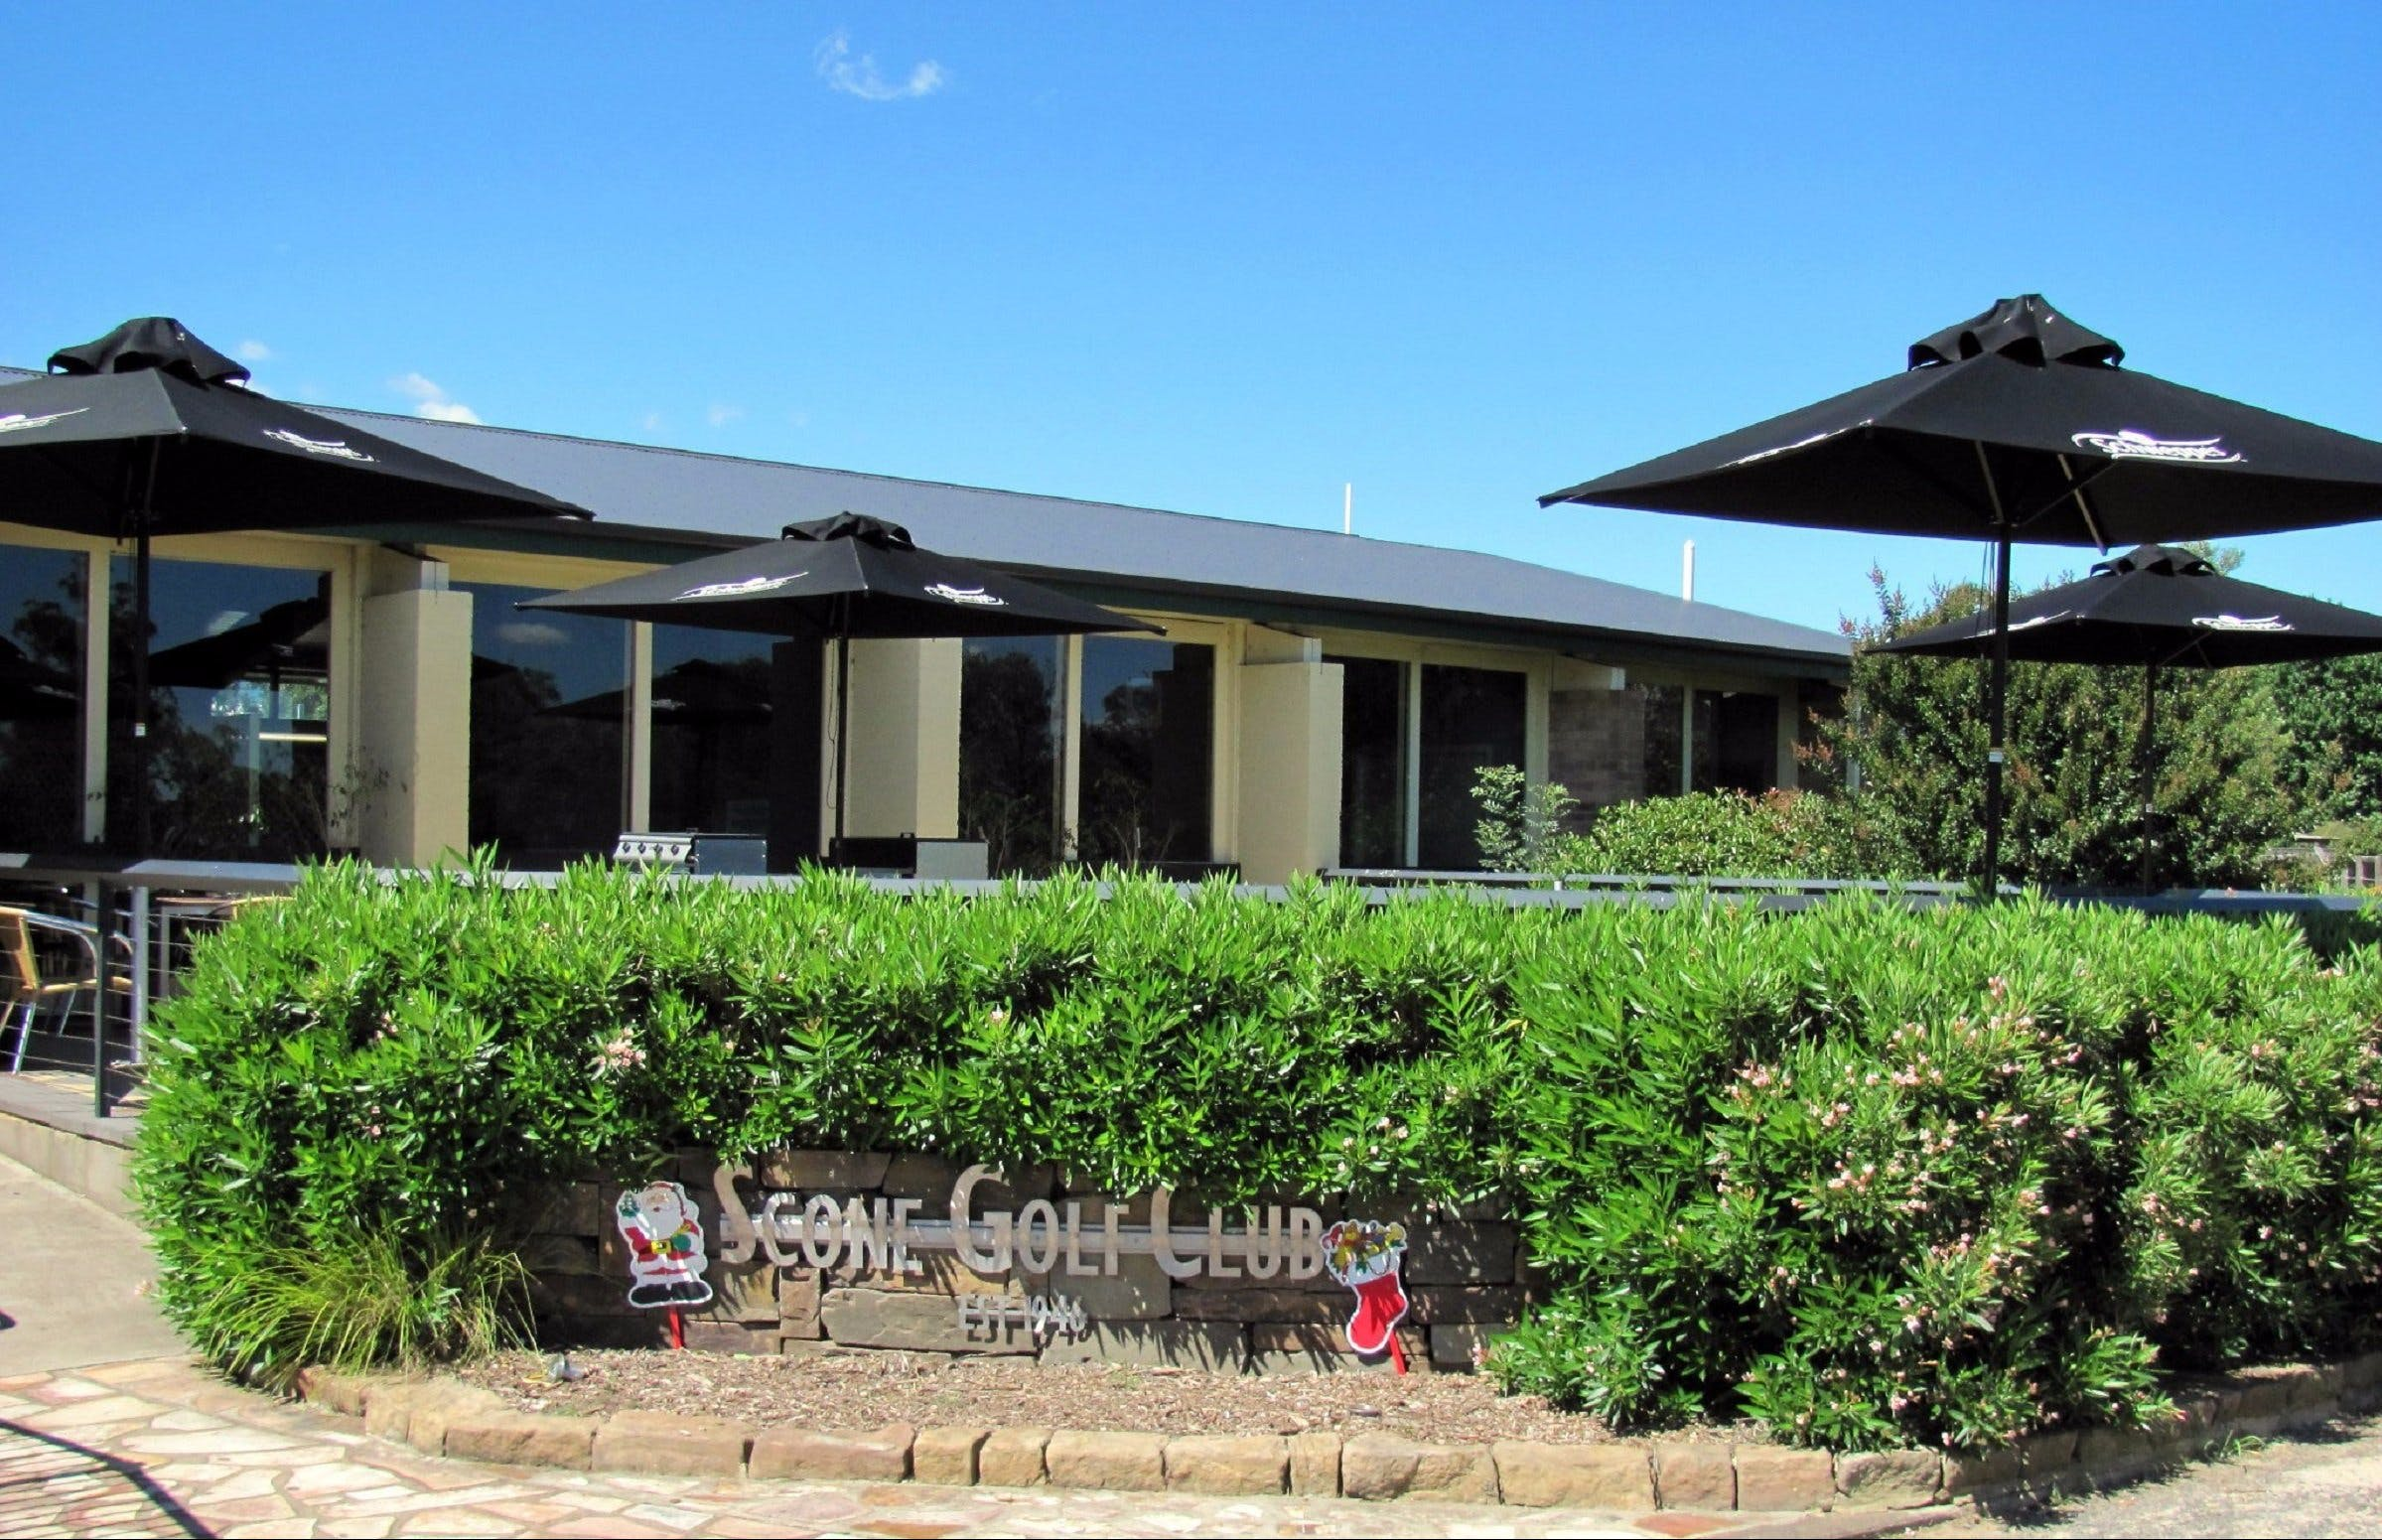 Scone Golf Club - ACT Tourism